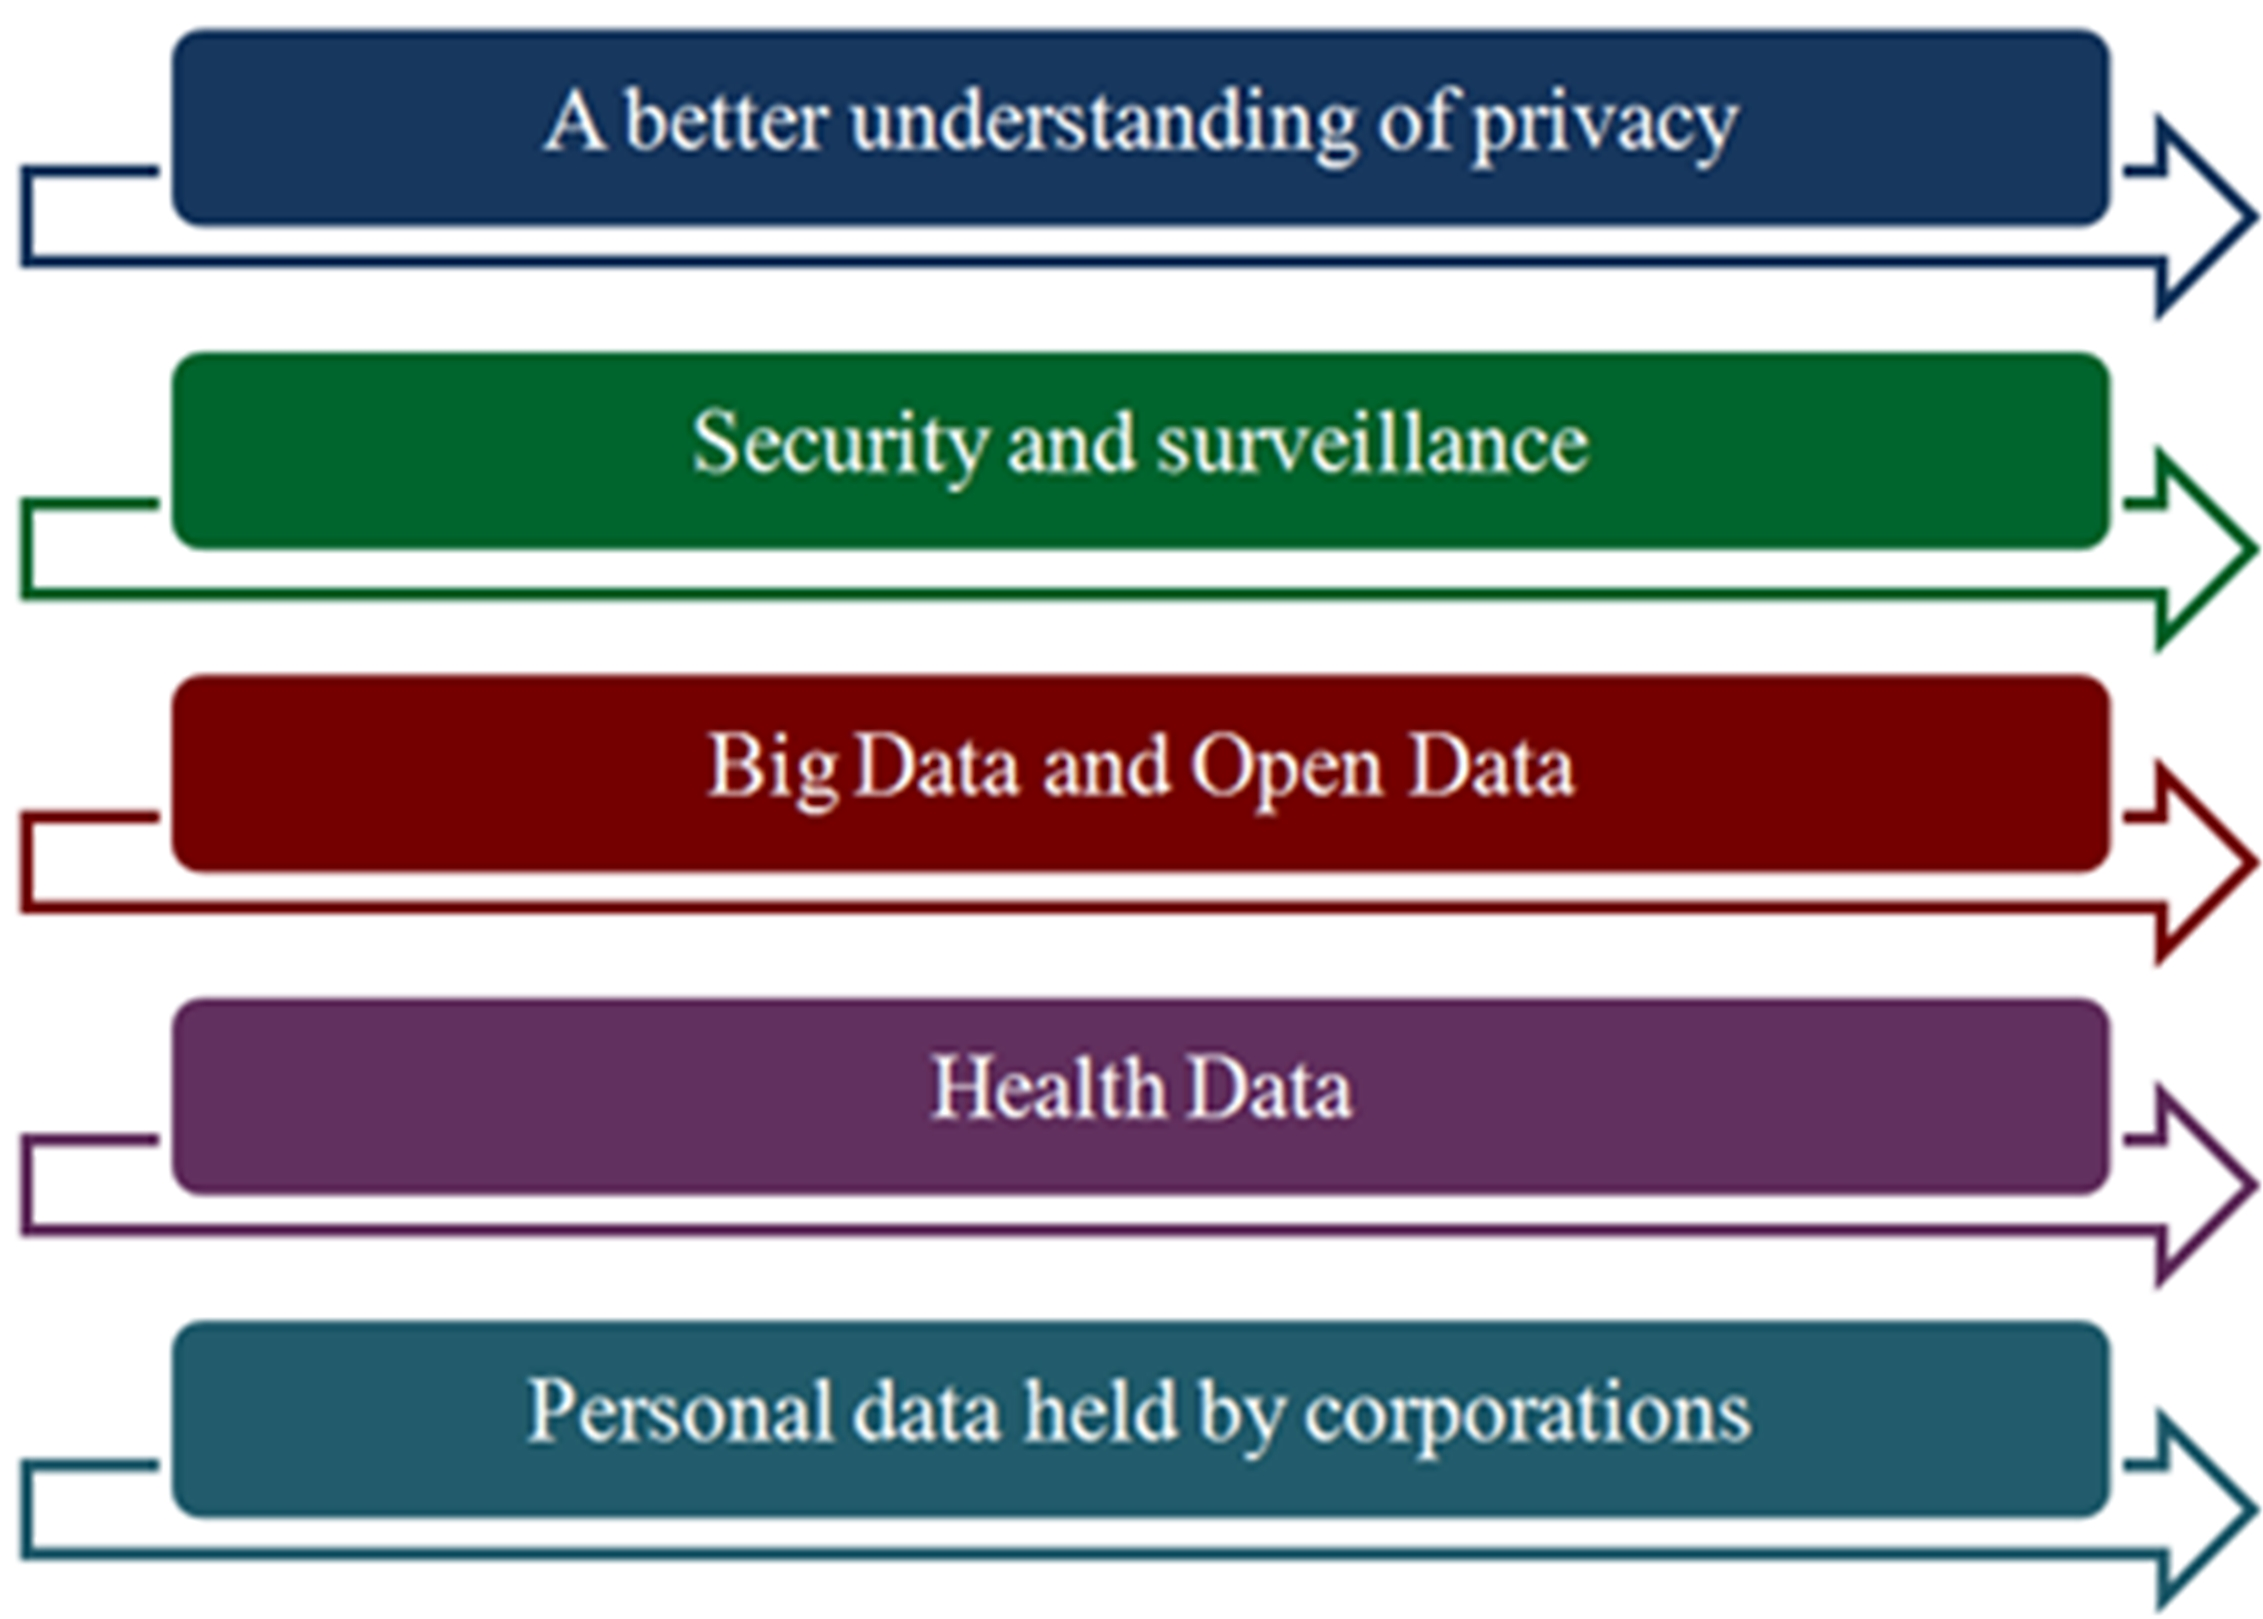 Parallel streams of action (TAS) for the mandate of the UN Special Rapporteur for Privacy and the first set of priorities